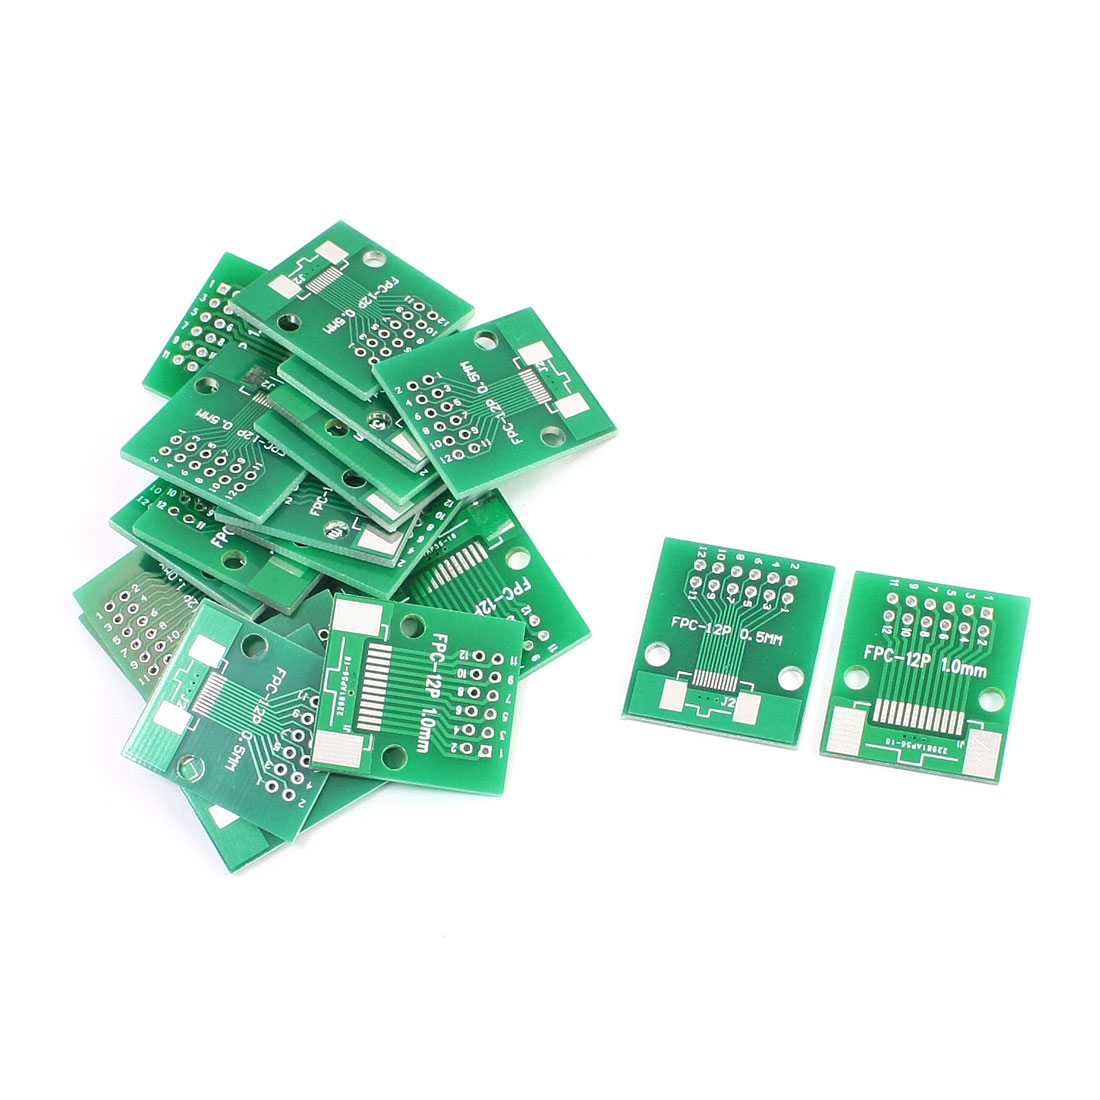 20PCS FPC/FFC DIP12 0.5mm 1.0mm IC PCB Adapter Converter 26 x 24mm